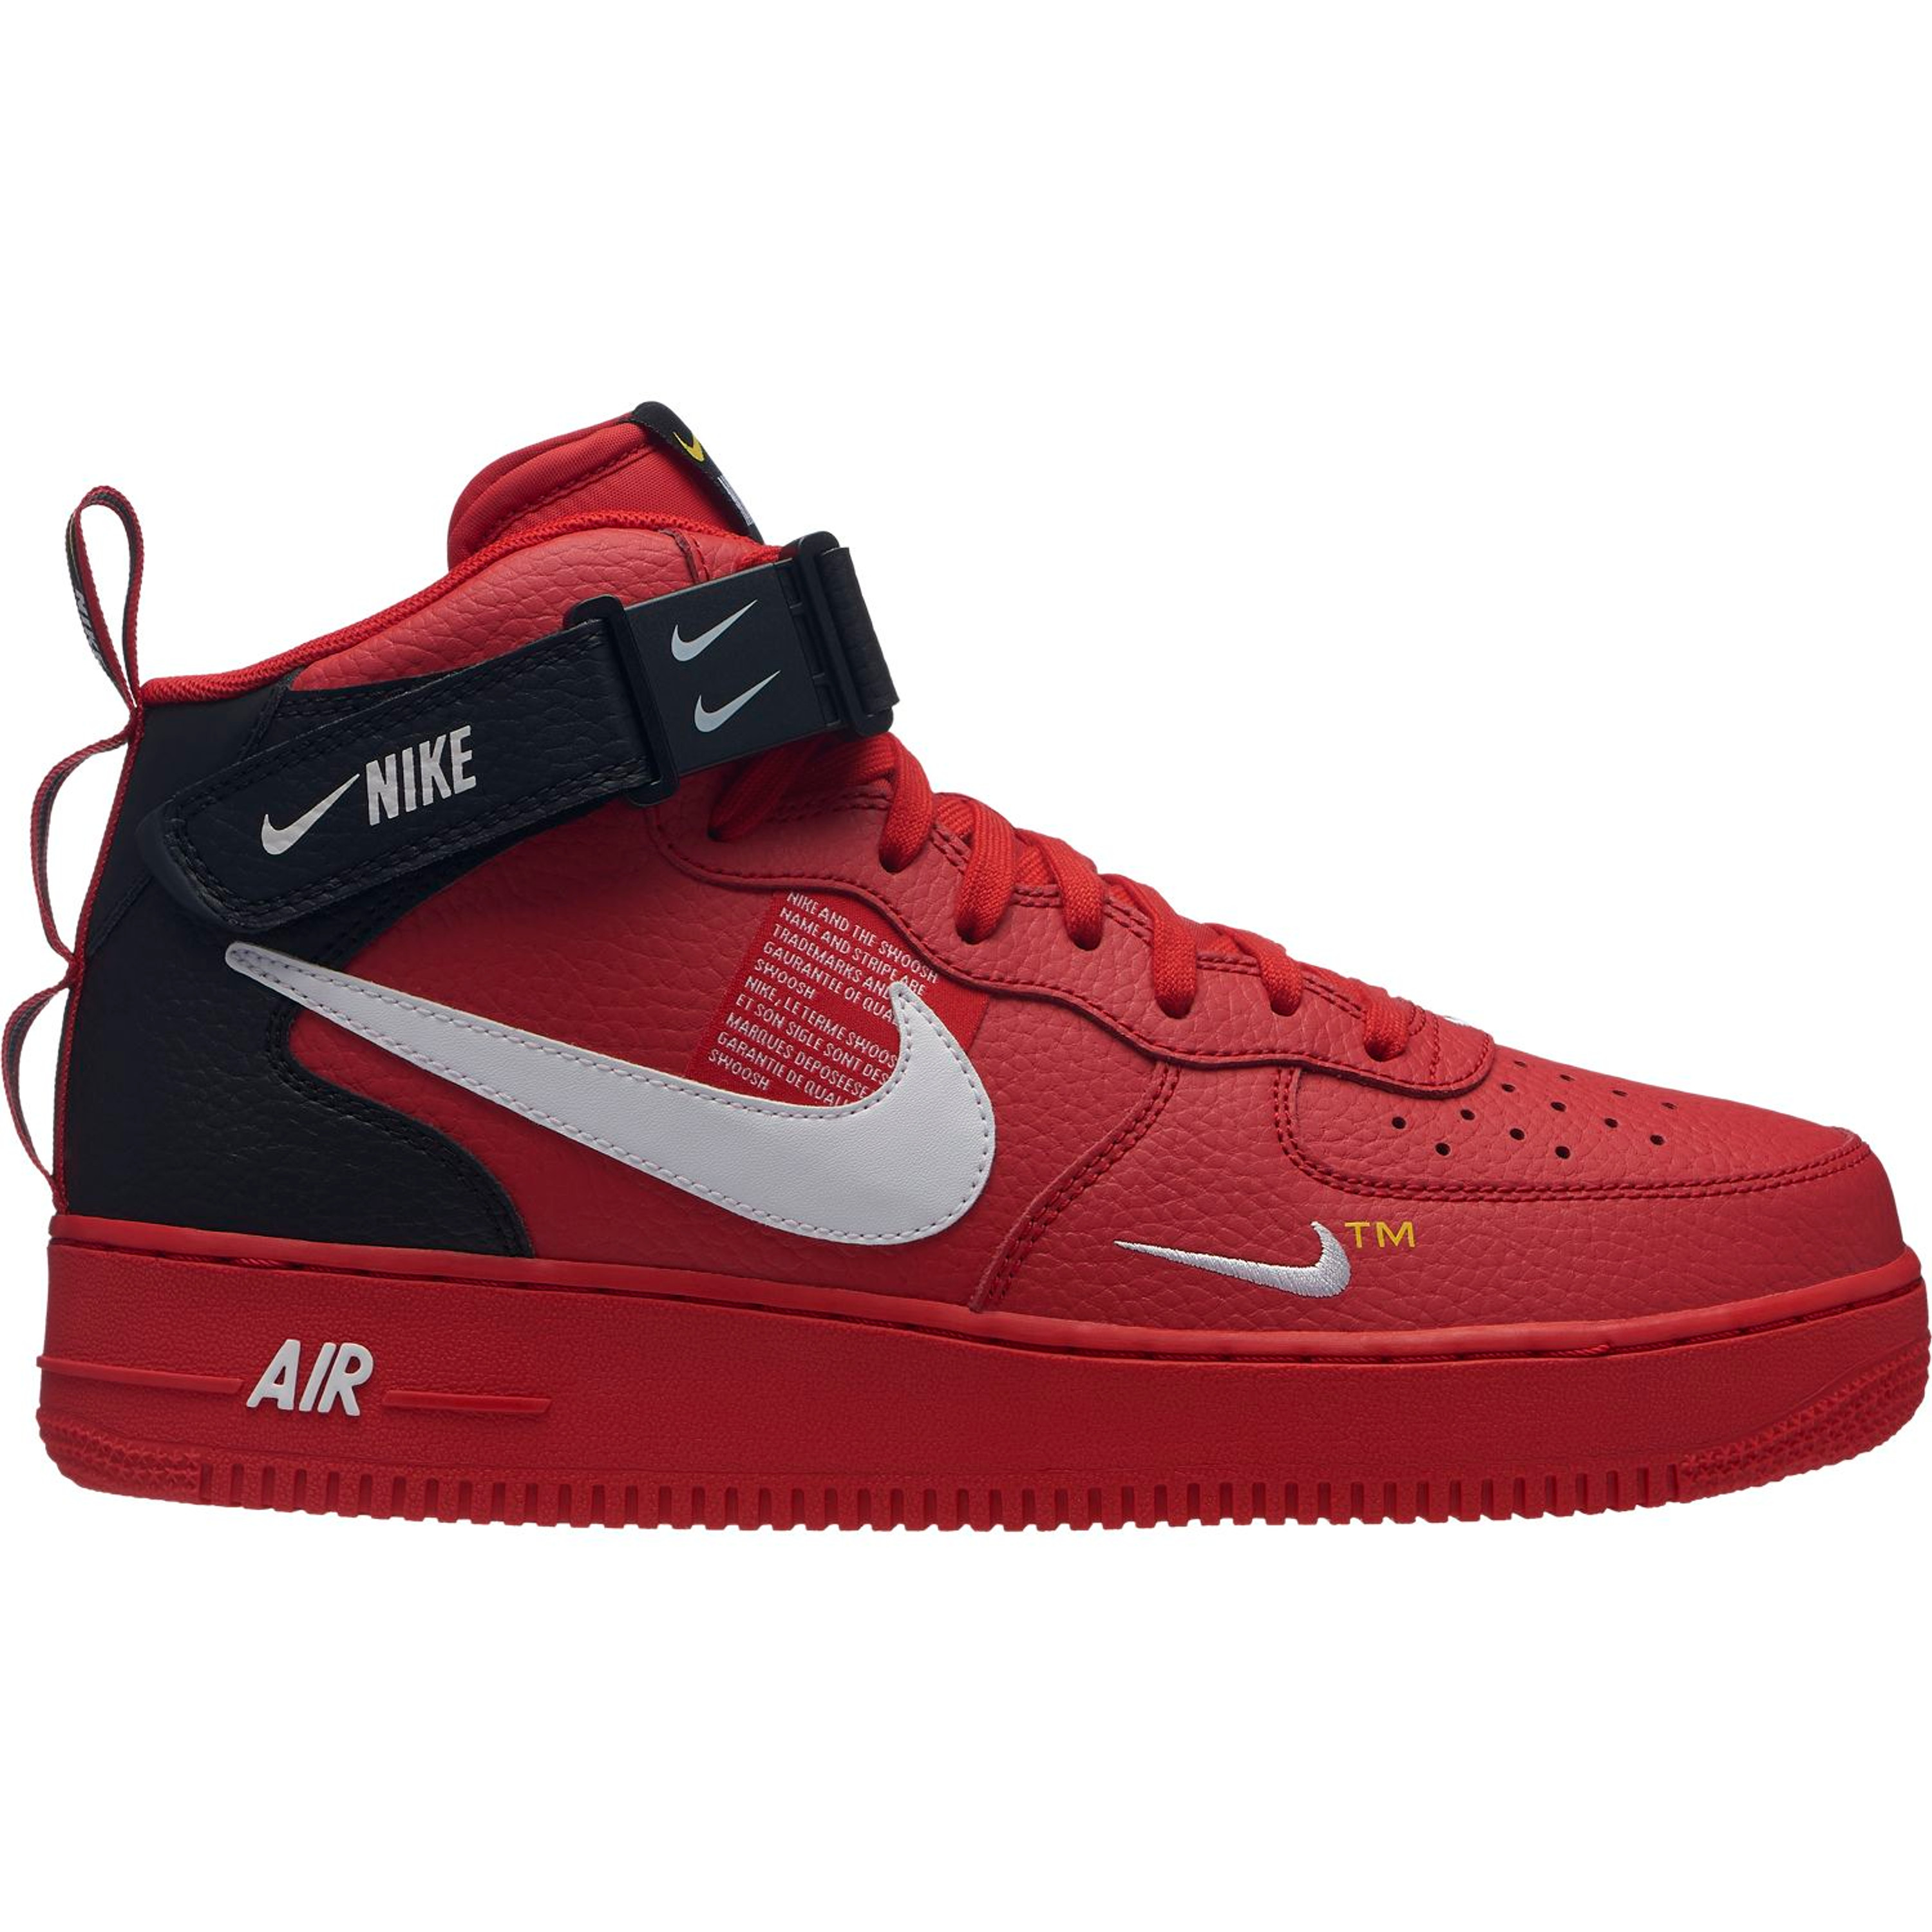 Nike Air Force 1 Mid '07 LV8 Hi-Top Basketball Retro-Style Sneakers für  Herren in rot